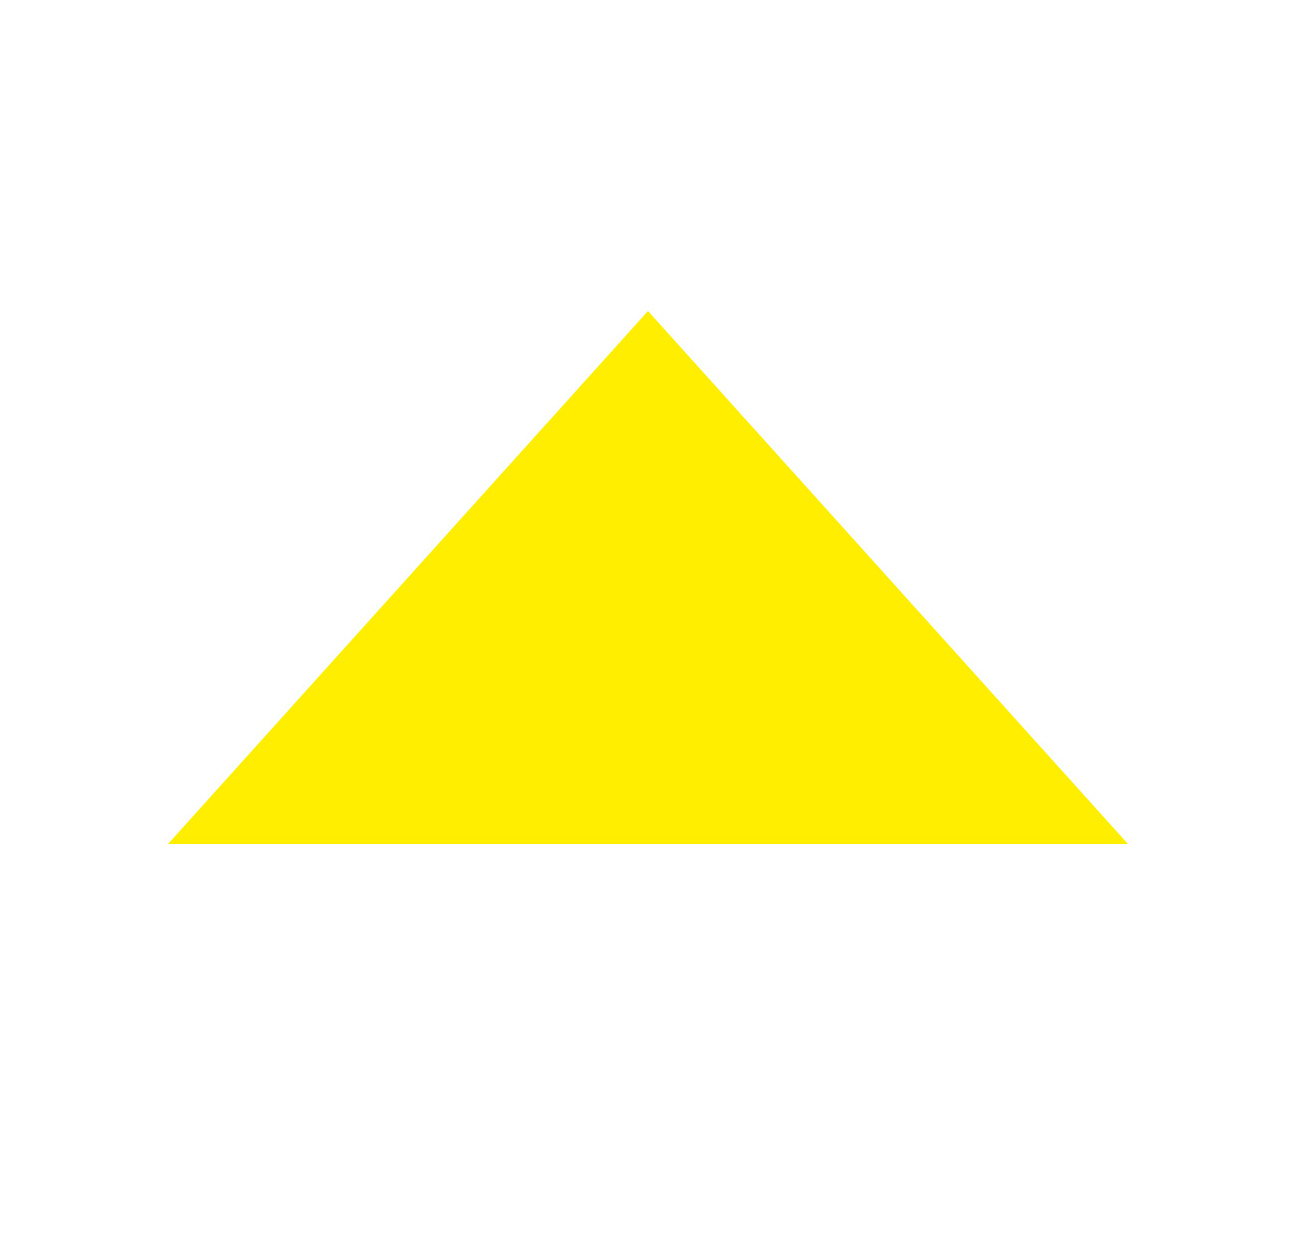 Golden Triangle, a Holy Trinity Symbol